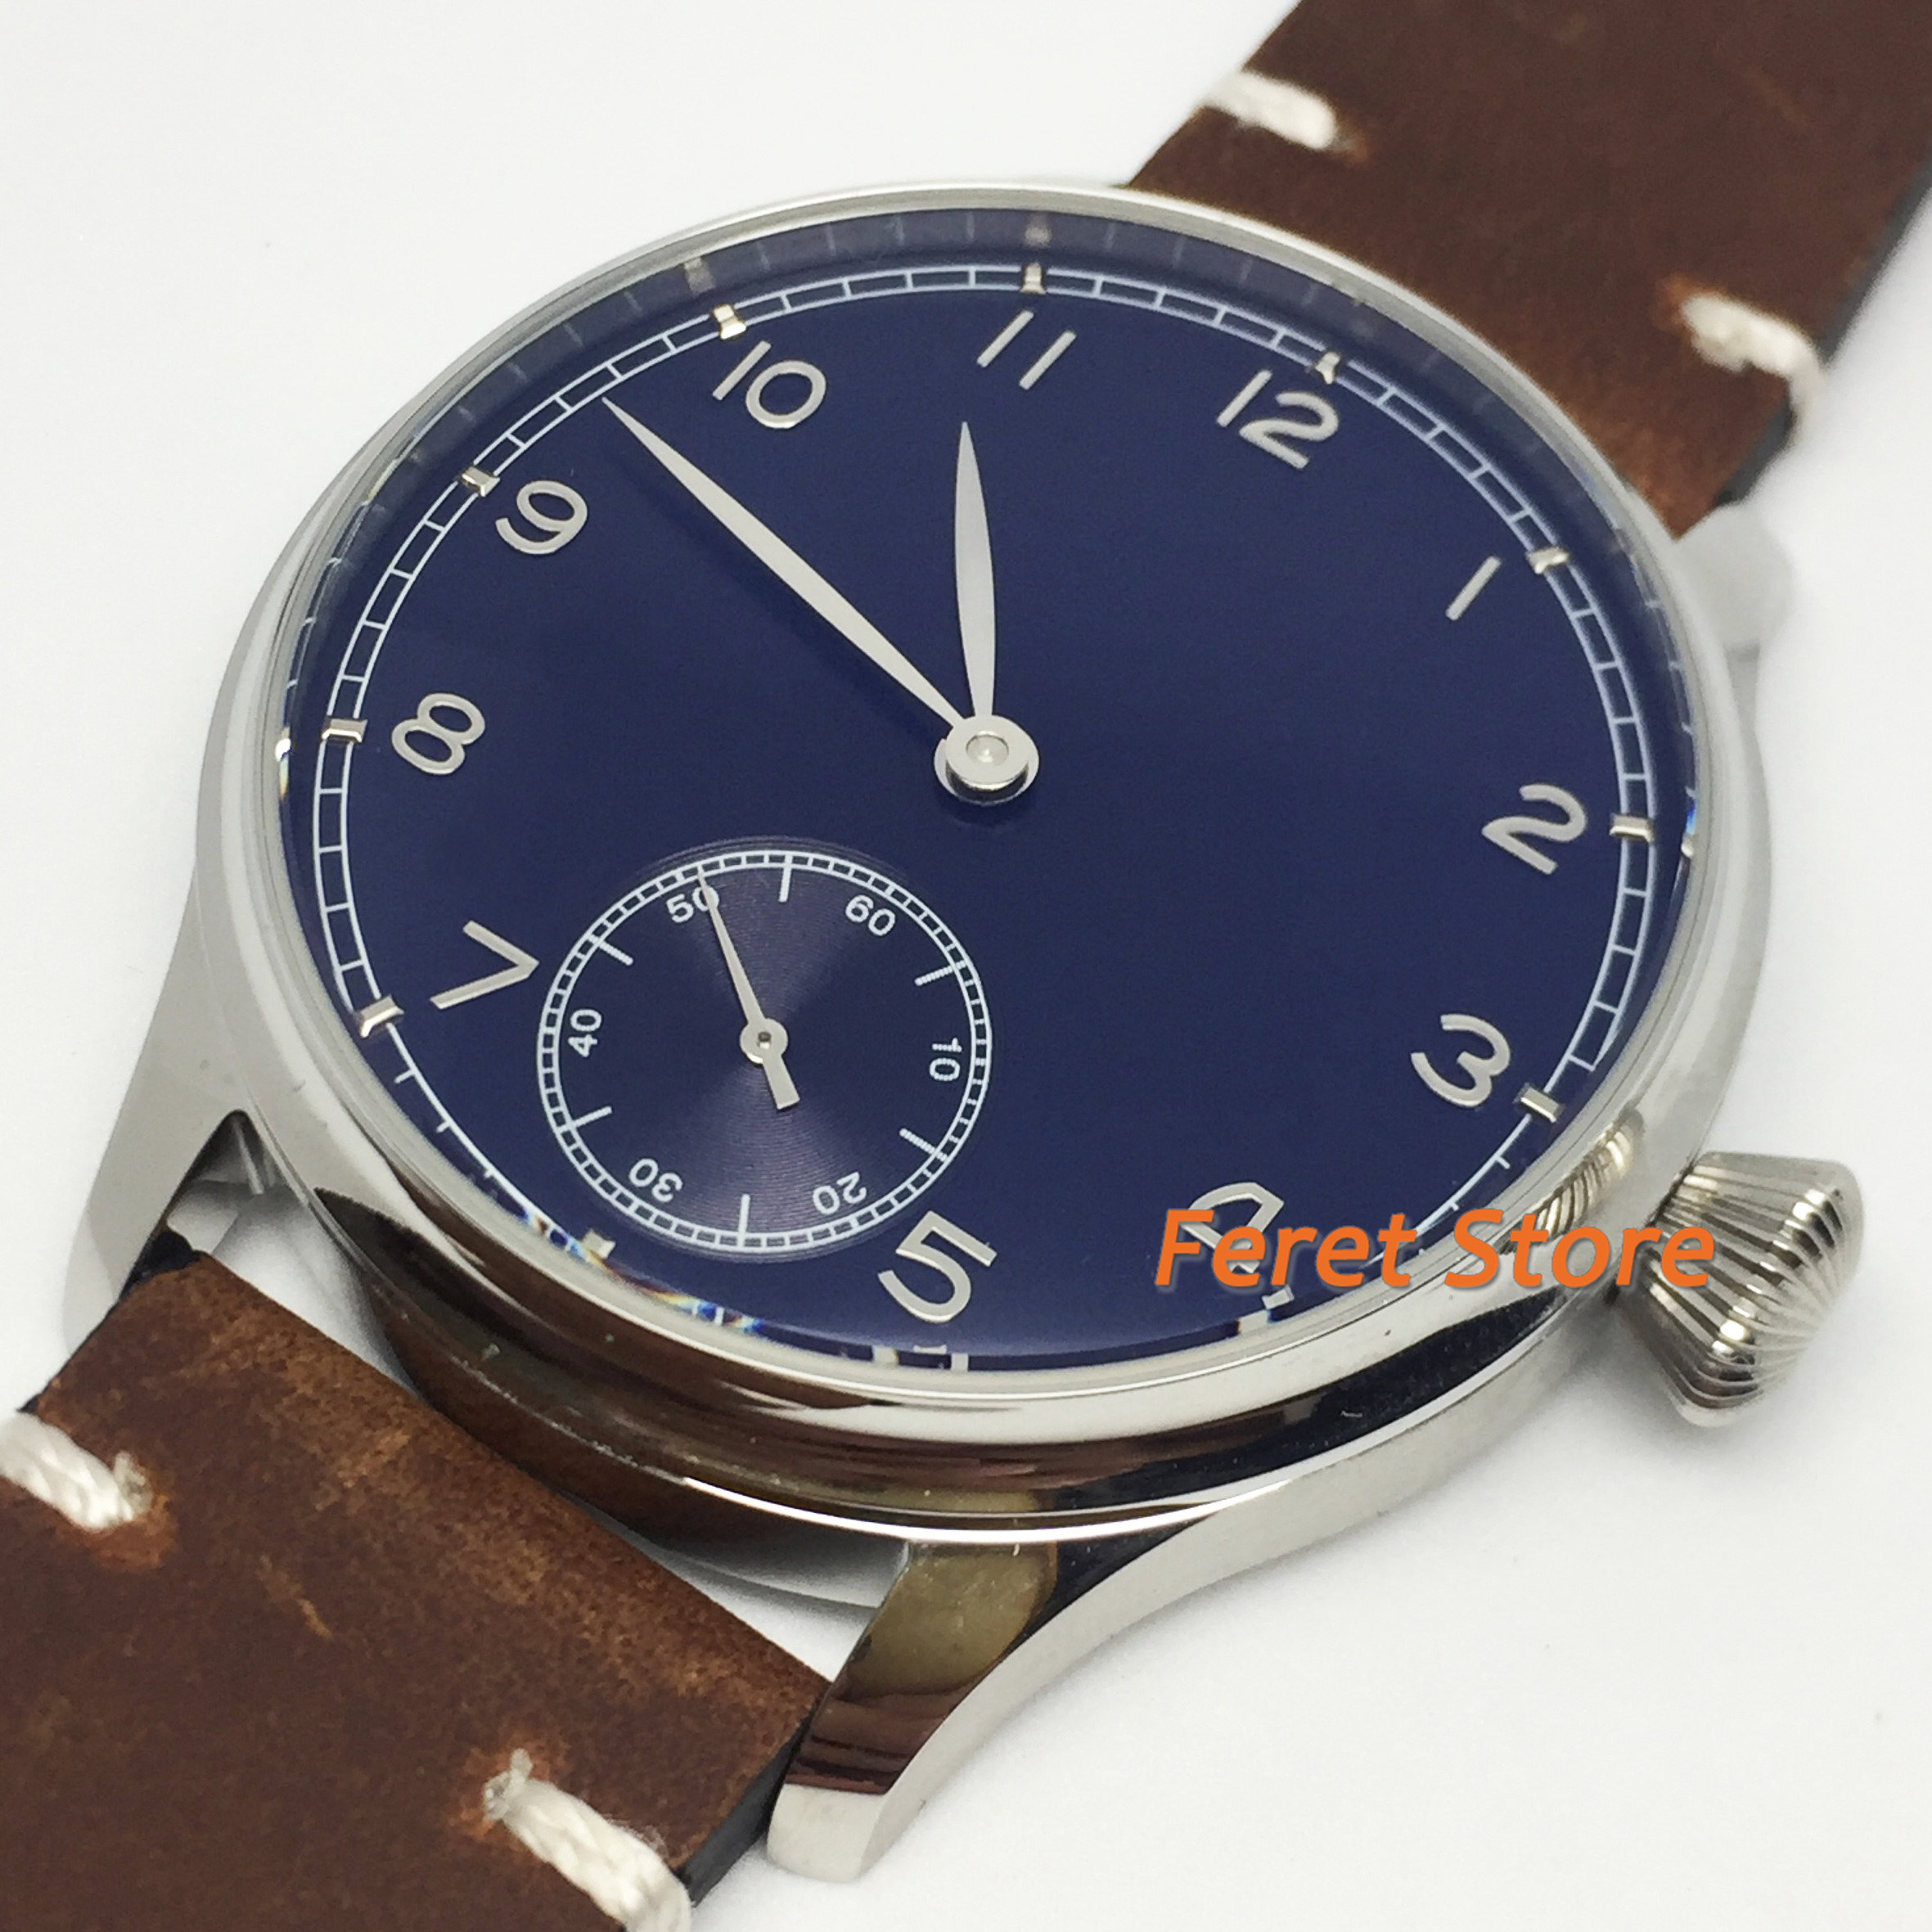 Corgeut 2020 New 44mm Top Mens watches Silver Polished Stainless Case SterileBlue dial Hand Winding 6498 Male Wristwatch Gift